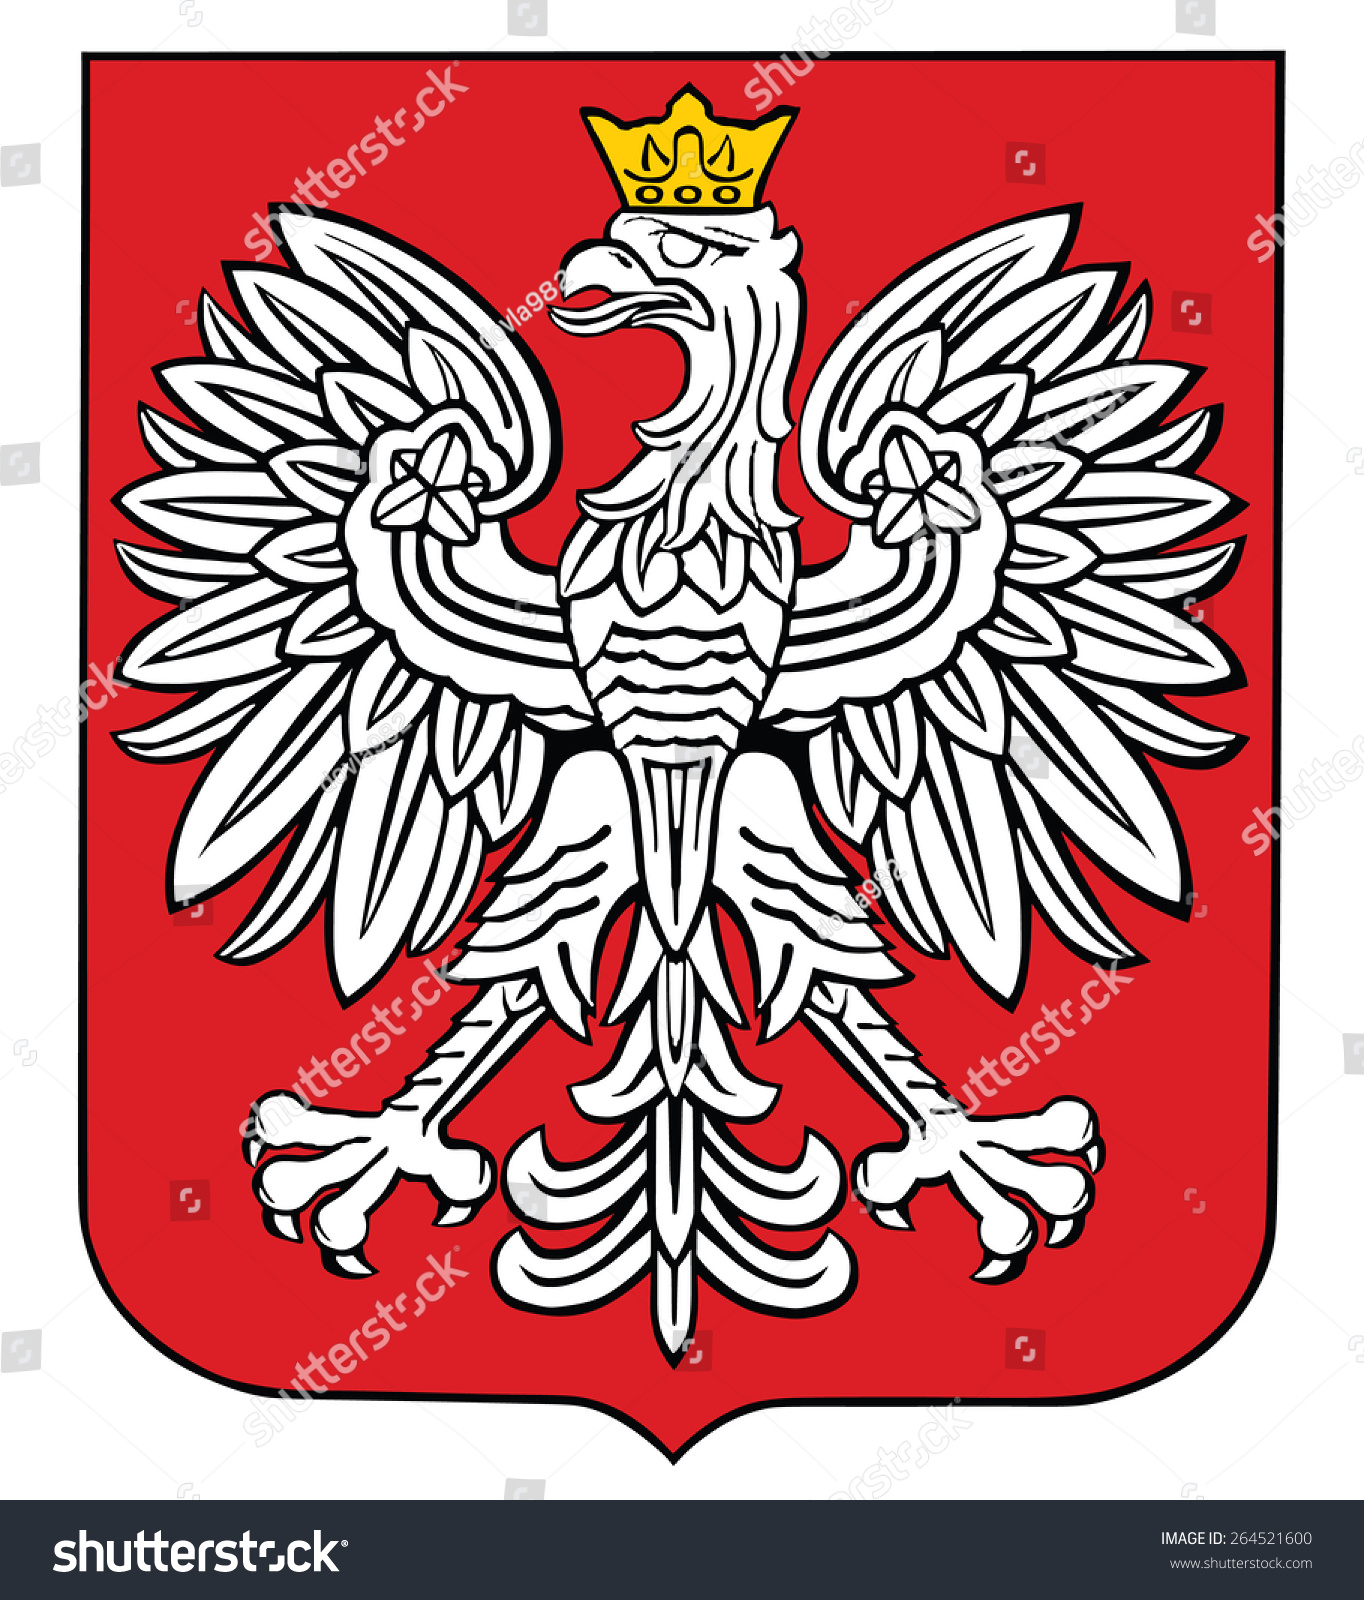 Poland coat arms seal national emblem stock vector 264521600 poland coat of arms seal national emblem isolated on white background vector biocorpaavc